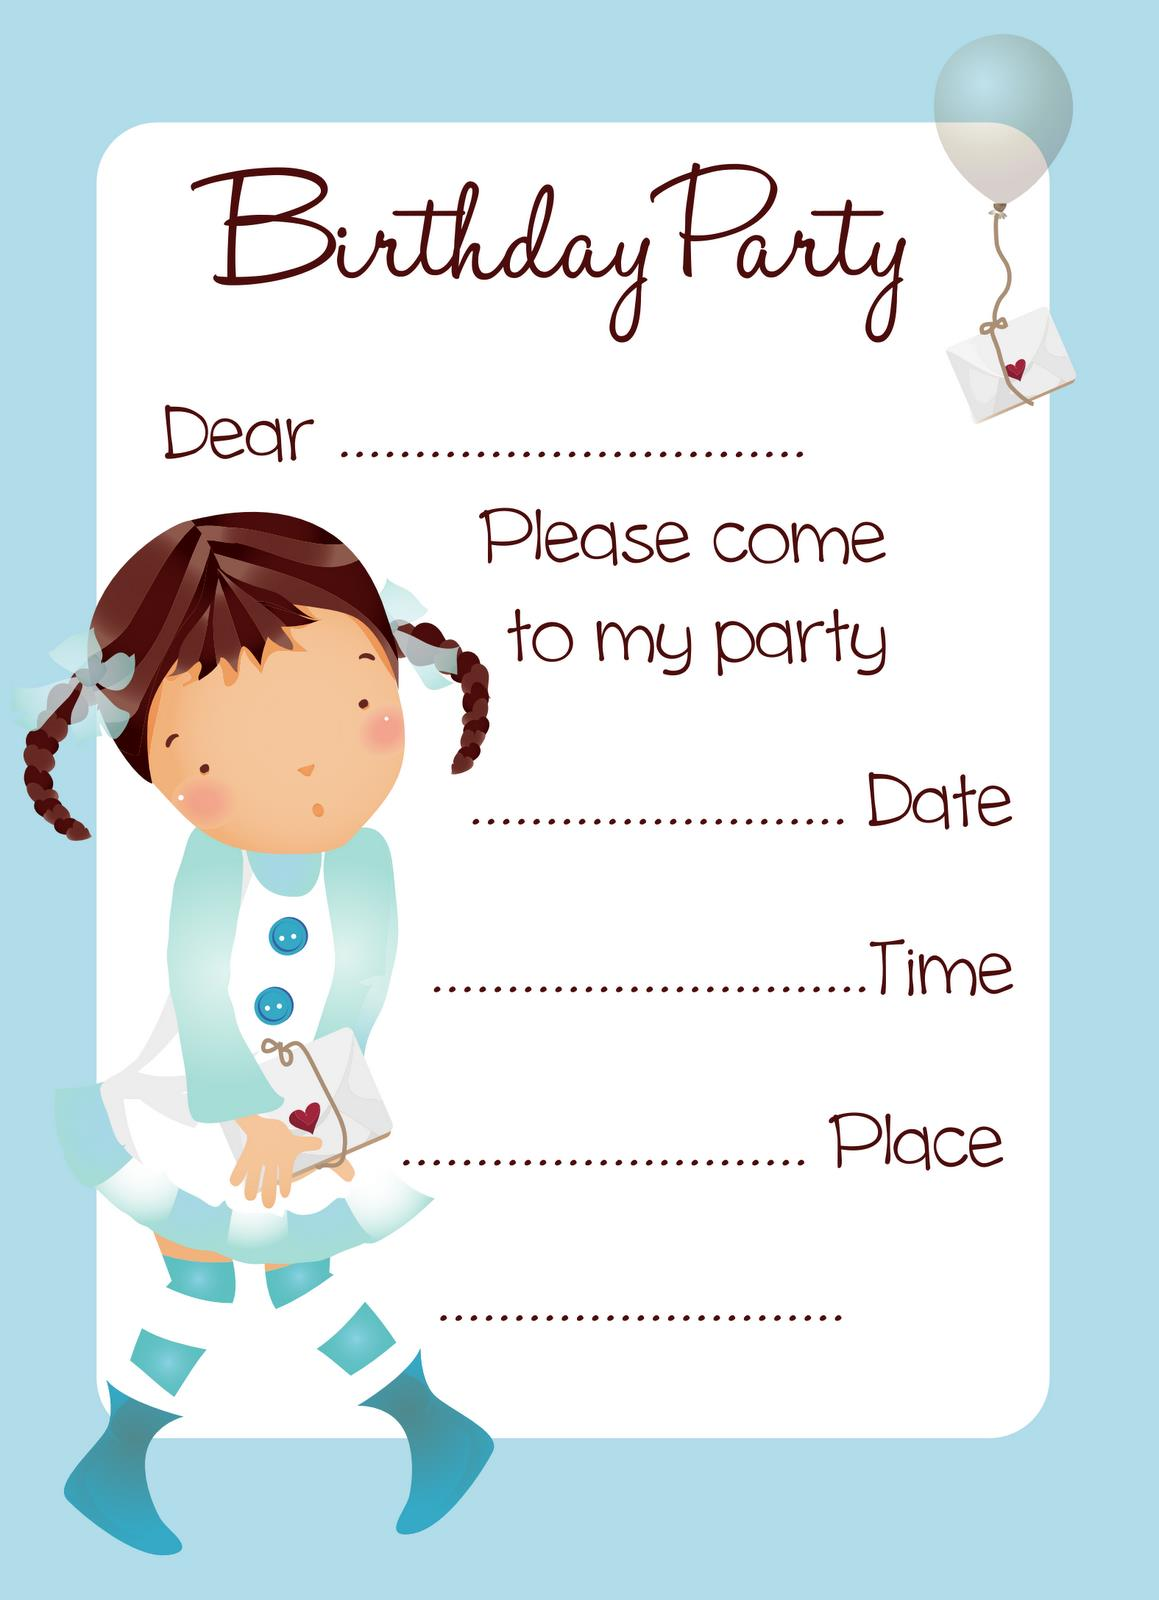 printable birthday invitations to color ; blue-balloon-print-invitation-cards-girl-birthday-party-printable-large-rectangular-shape-blue-color-form-date-name